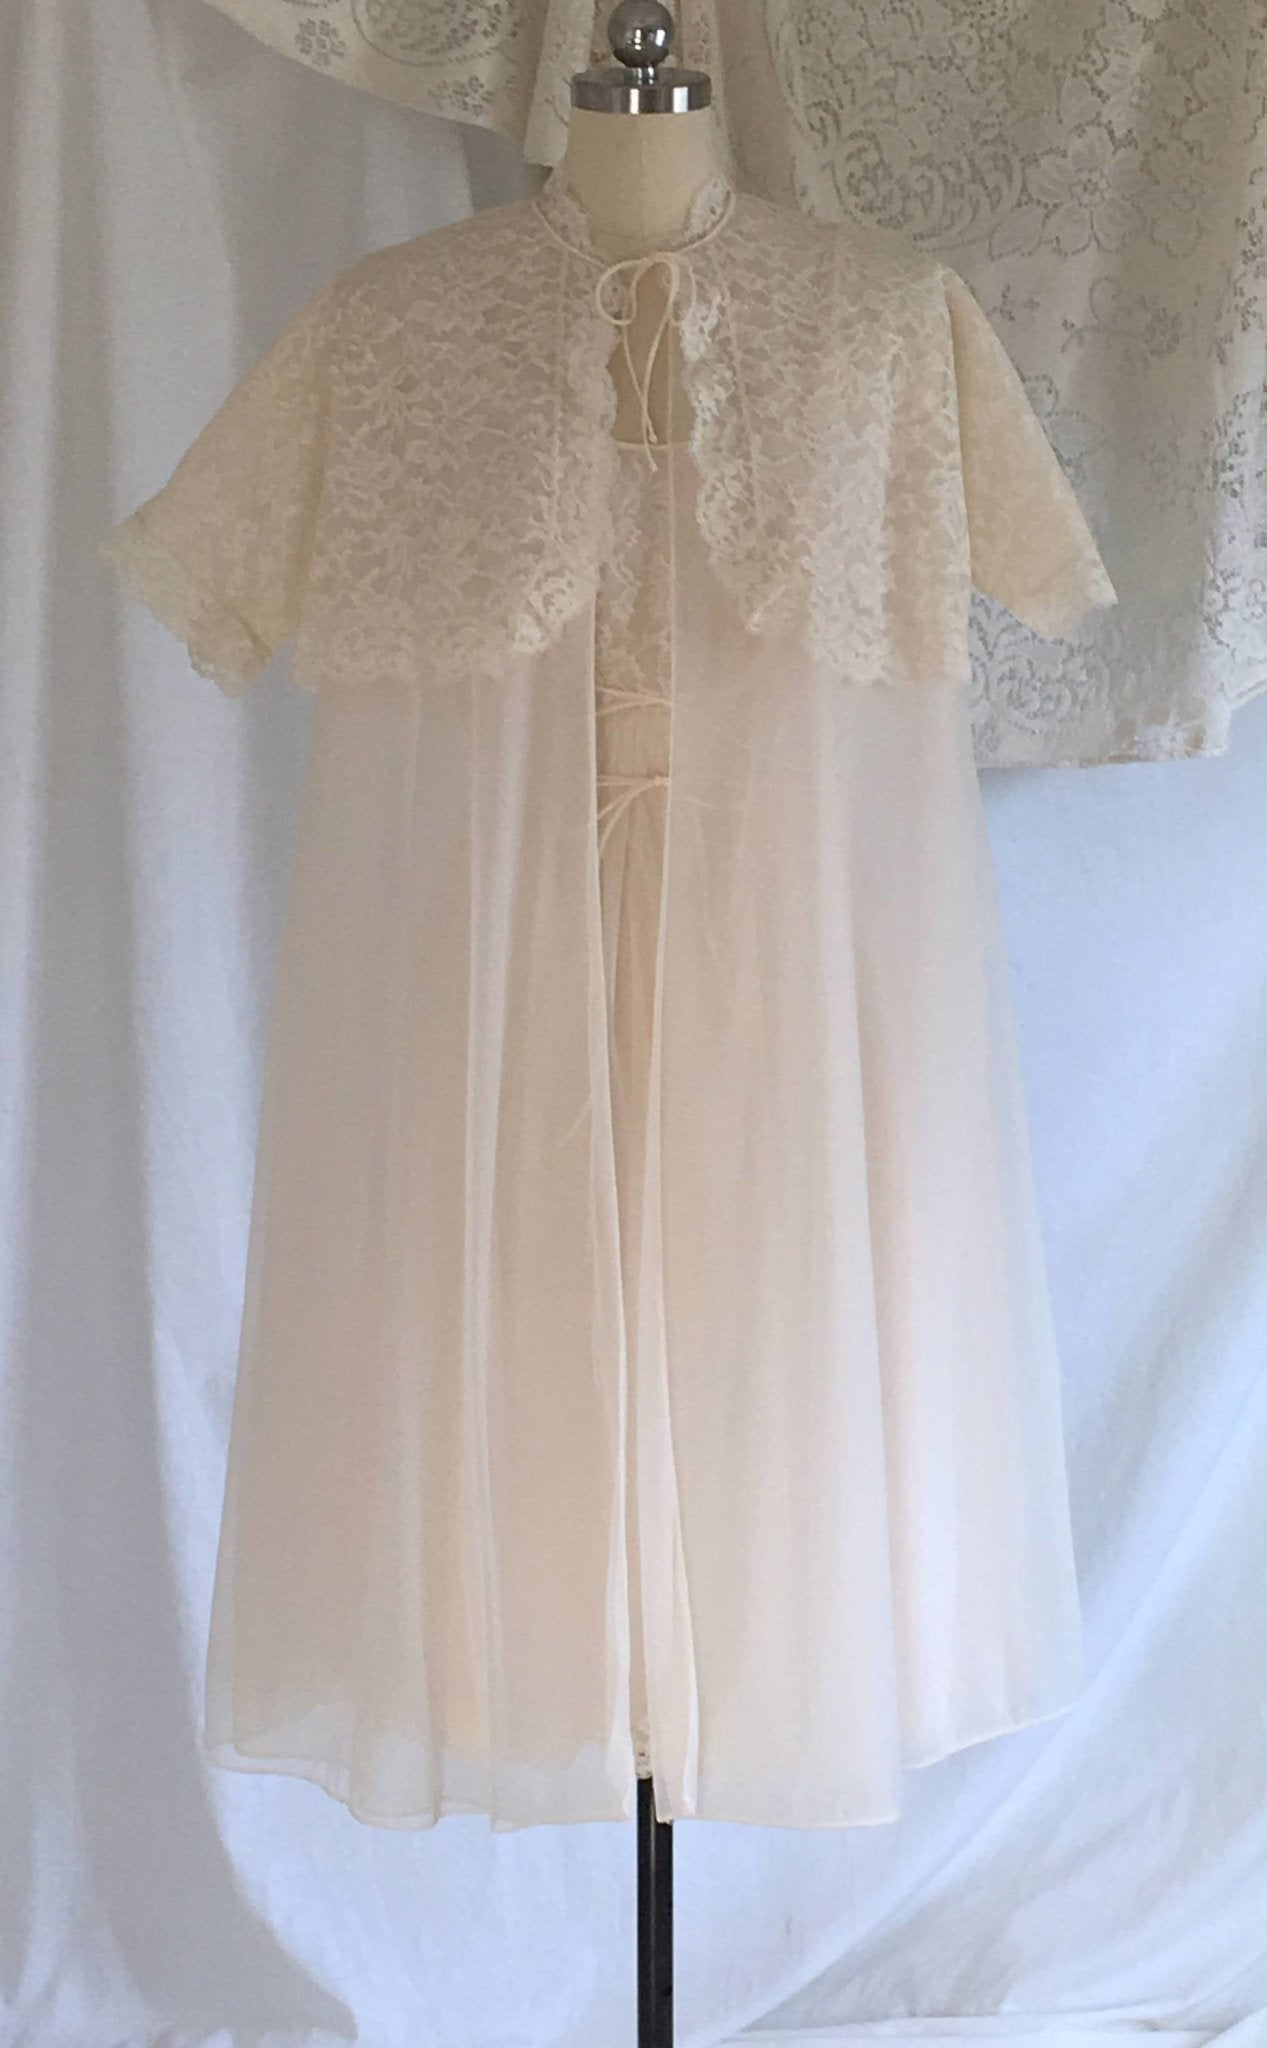 1960 Baby Doll Peignoir Vintage SHADOWLINE Lingerie sz Med Boudoir Lingerie Sheer Voile with Lace Lounge Wear Bridal Nighty